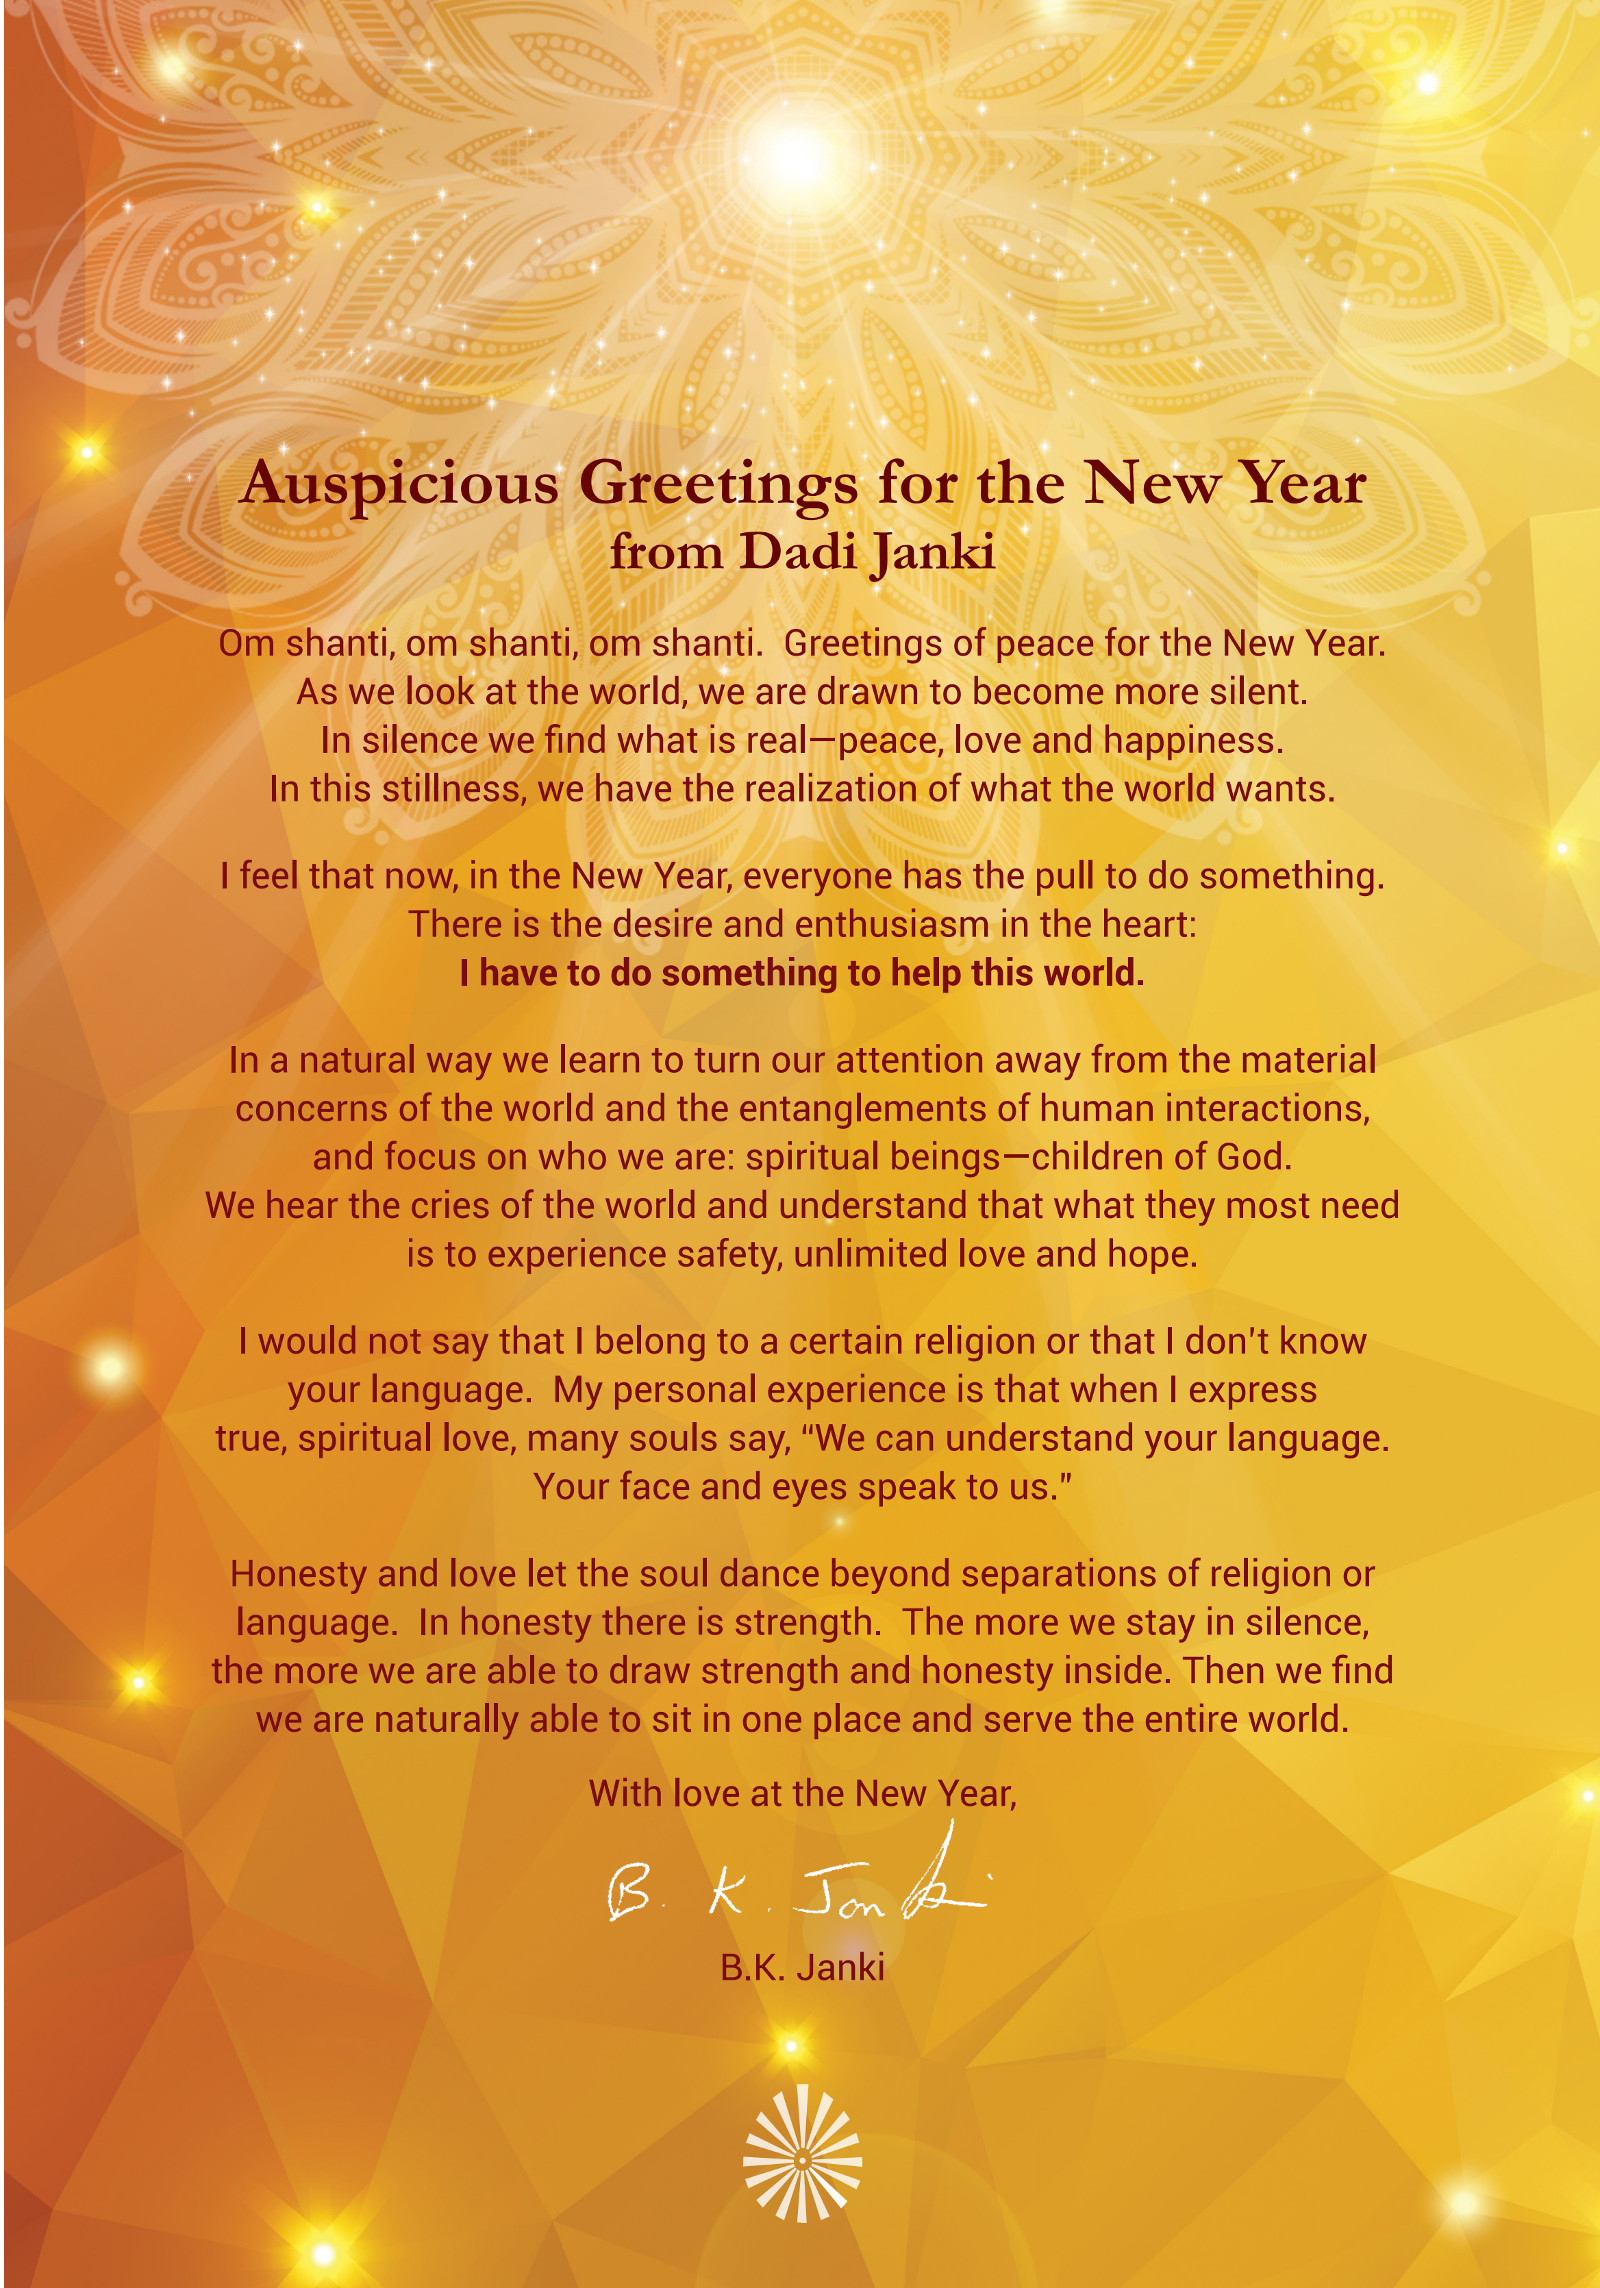 Auspicious Greetings for the New Year